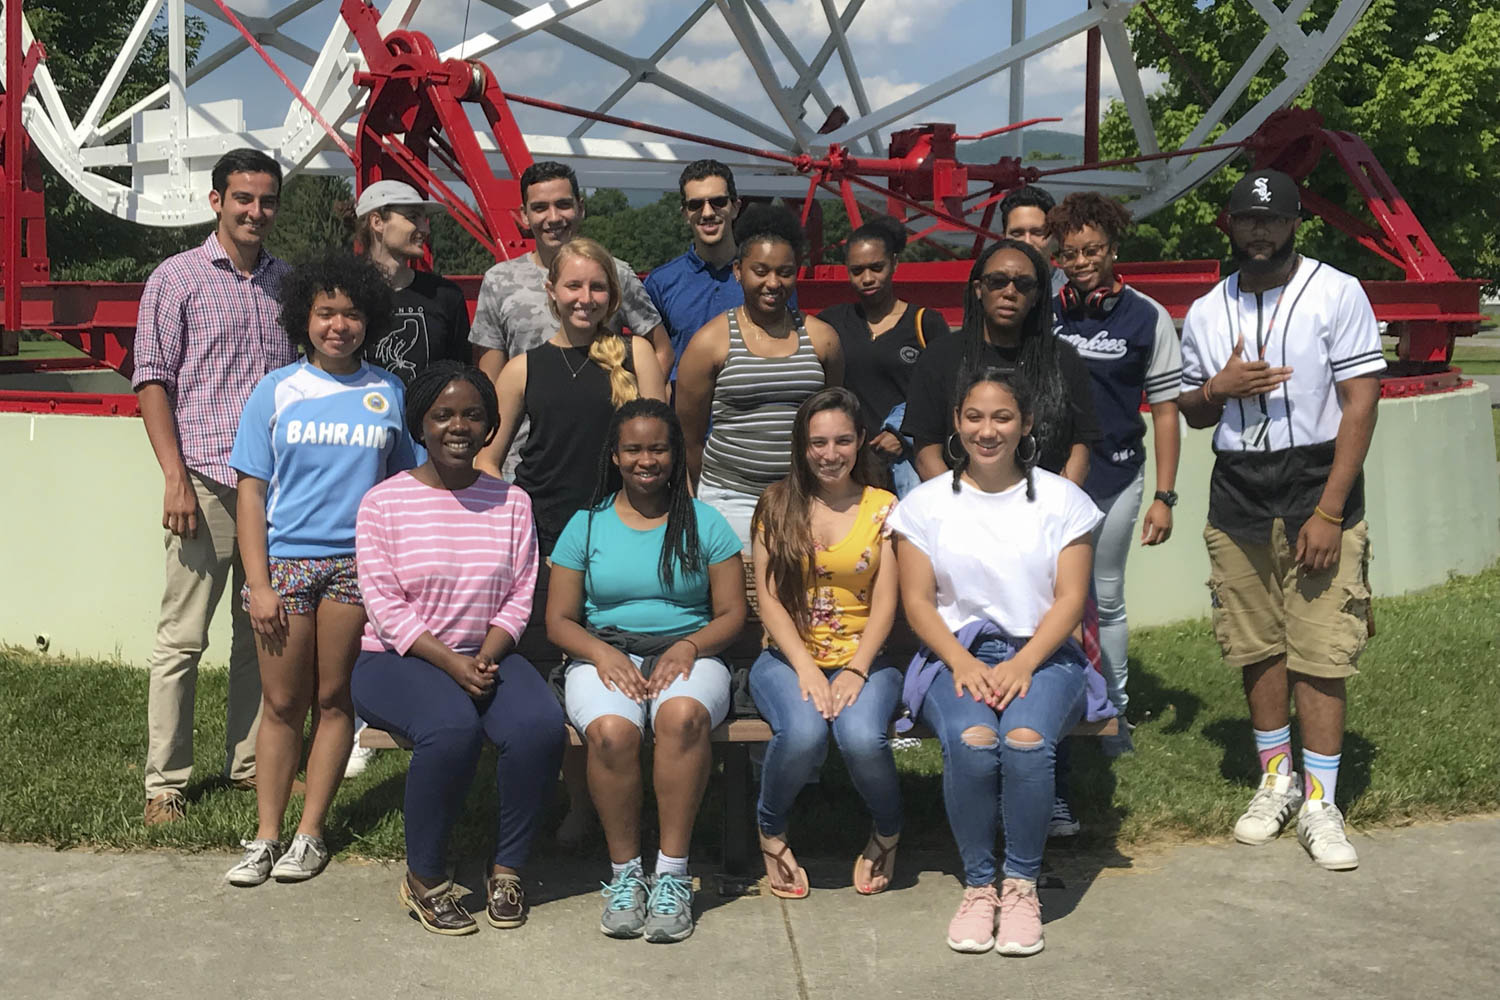 Students in the Virginia-North Carolina Alliance program pose for a photo in front of the Reber Telescope at the Green Bank Observatory in Green Bank, West Virginia.